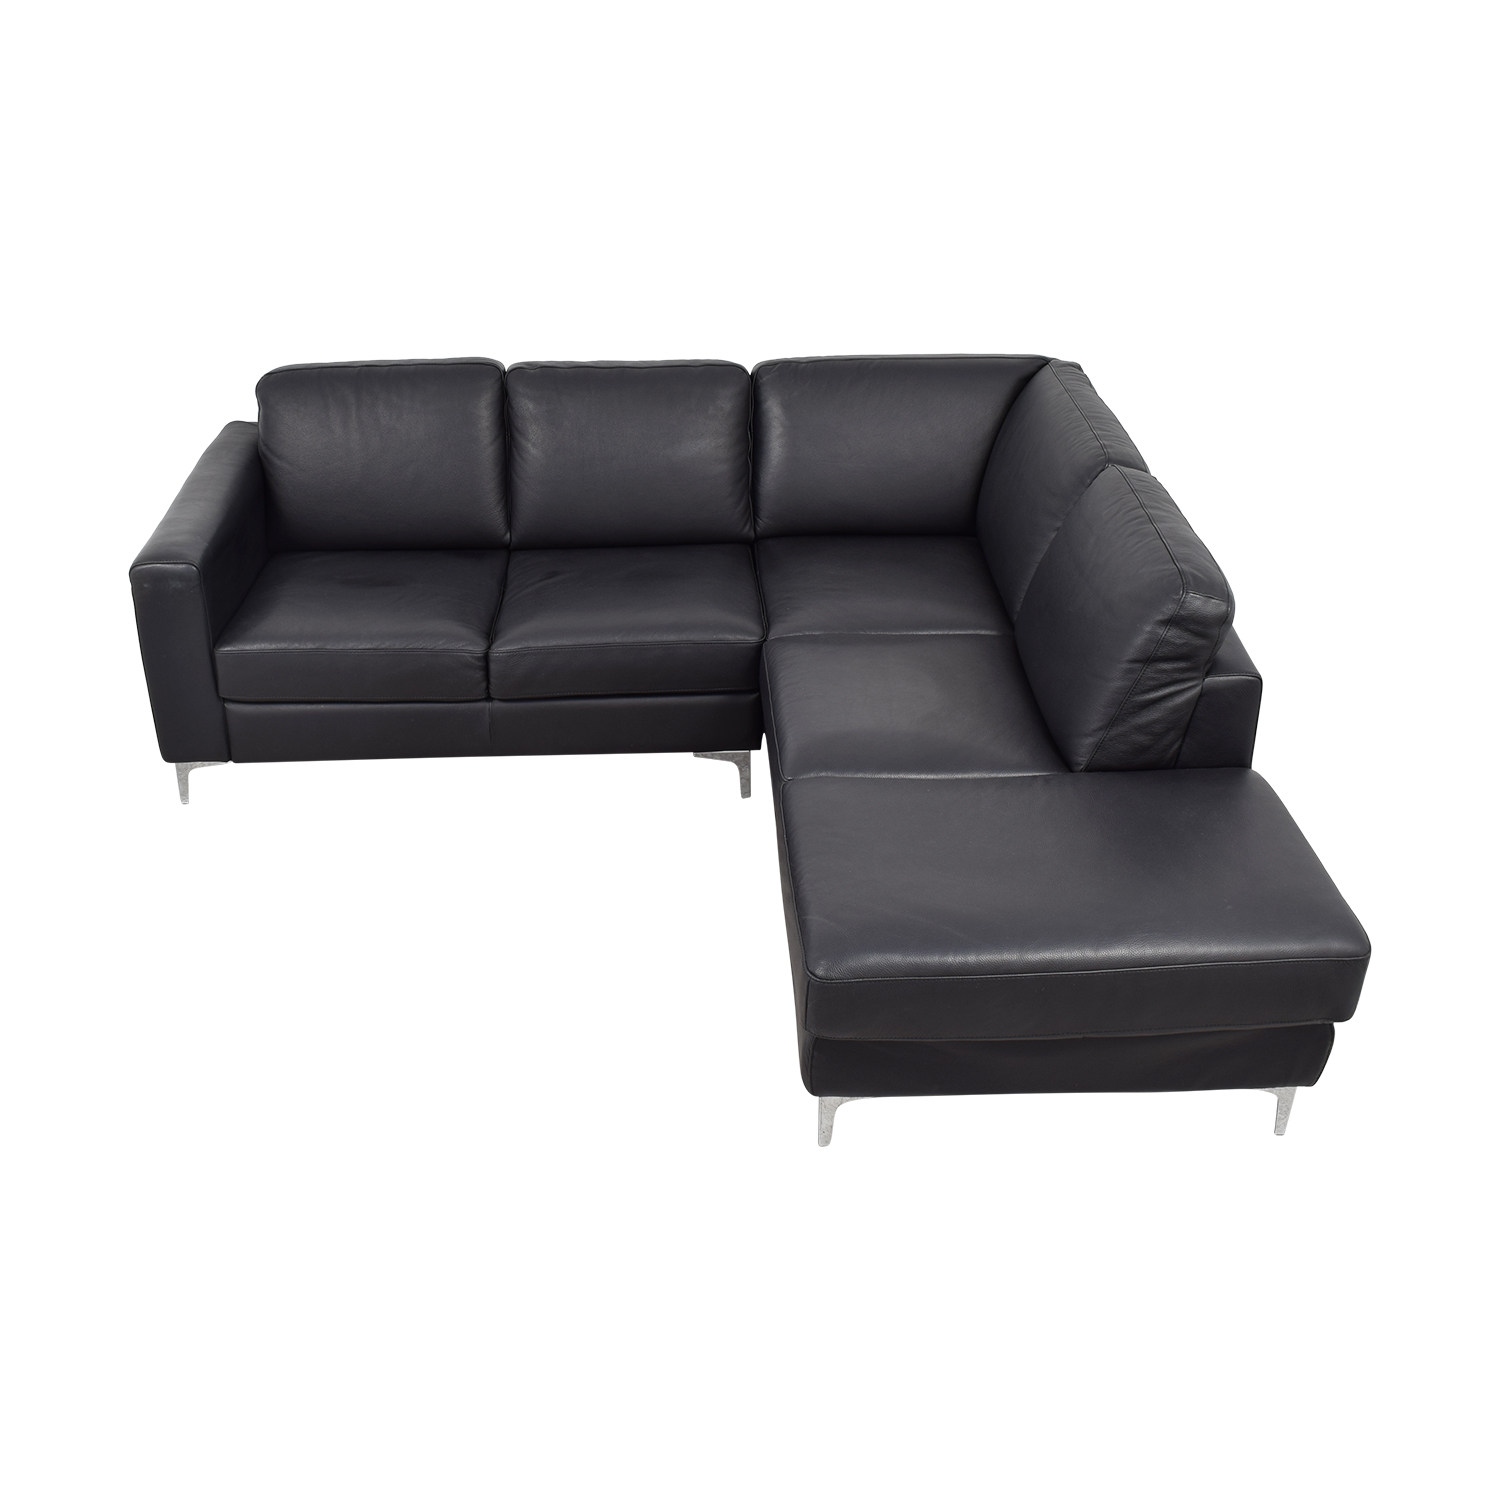 Cubo Rosso Black Leather L-Shaped Sectional / Sofas